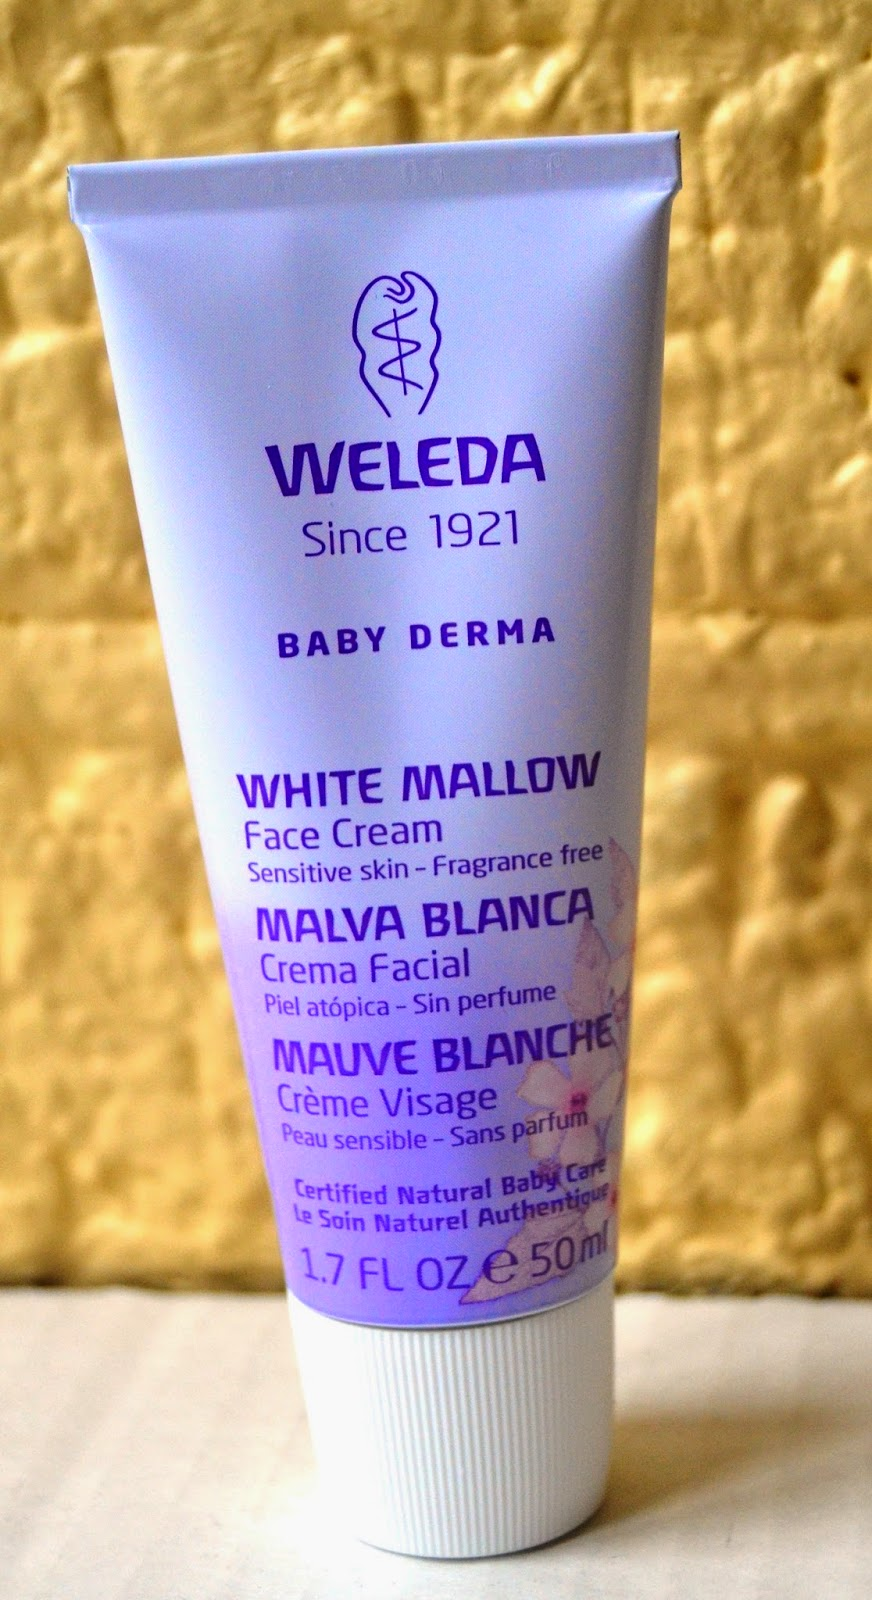 Weleda baby skincare products for sensitive skin and eczema